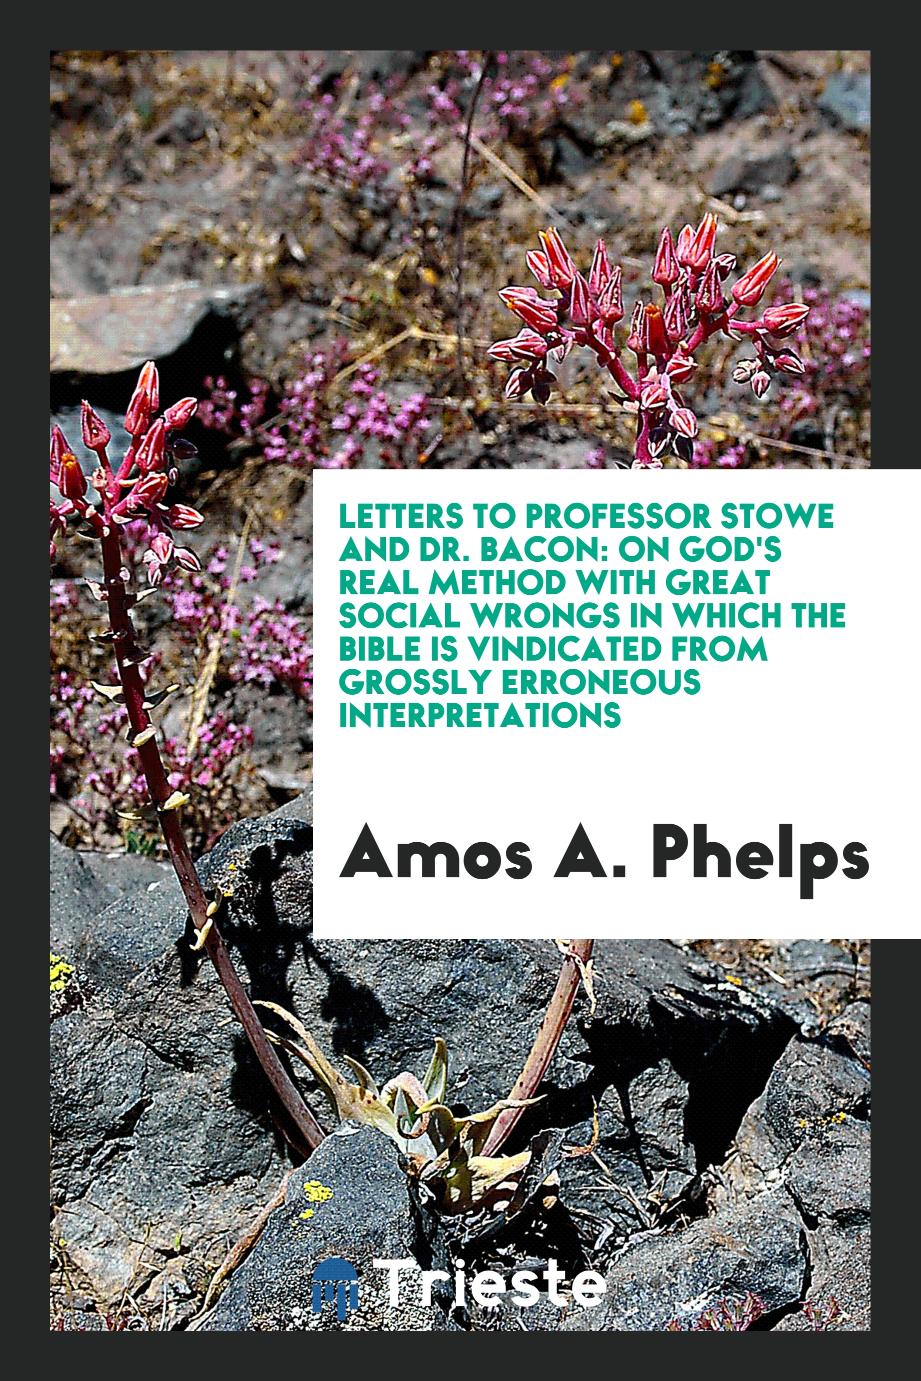 Amos A. Phelps - Letters to Professor Stowe and Dr. Bacon: On God's Real Method with Great Social Wrongs in Which the Bible Is Vindicated from Grossly Erroneous Interpretations